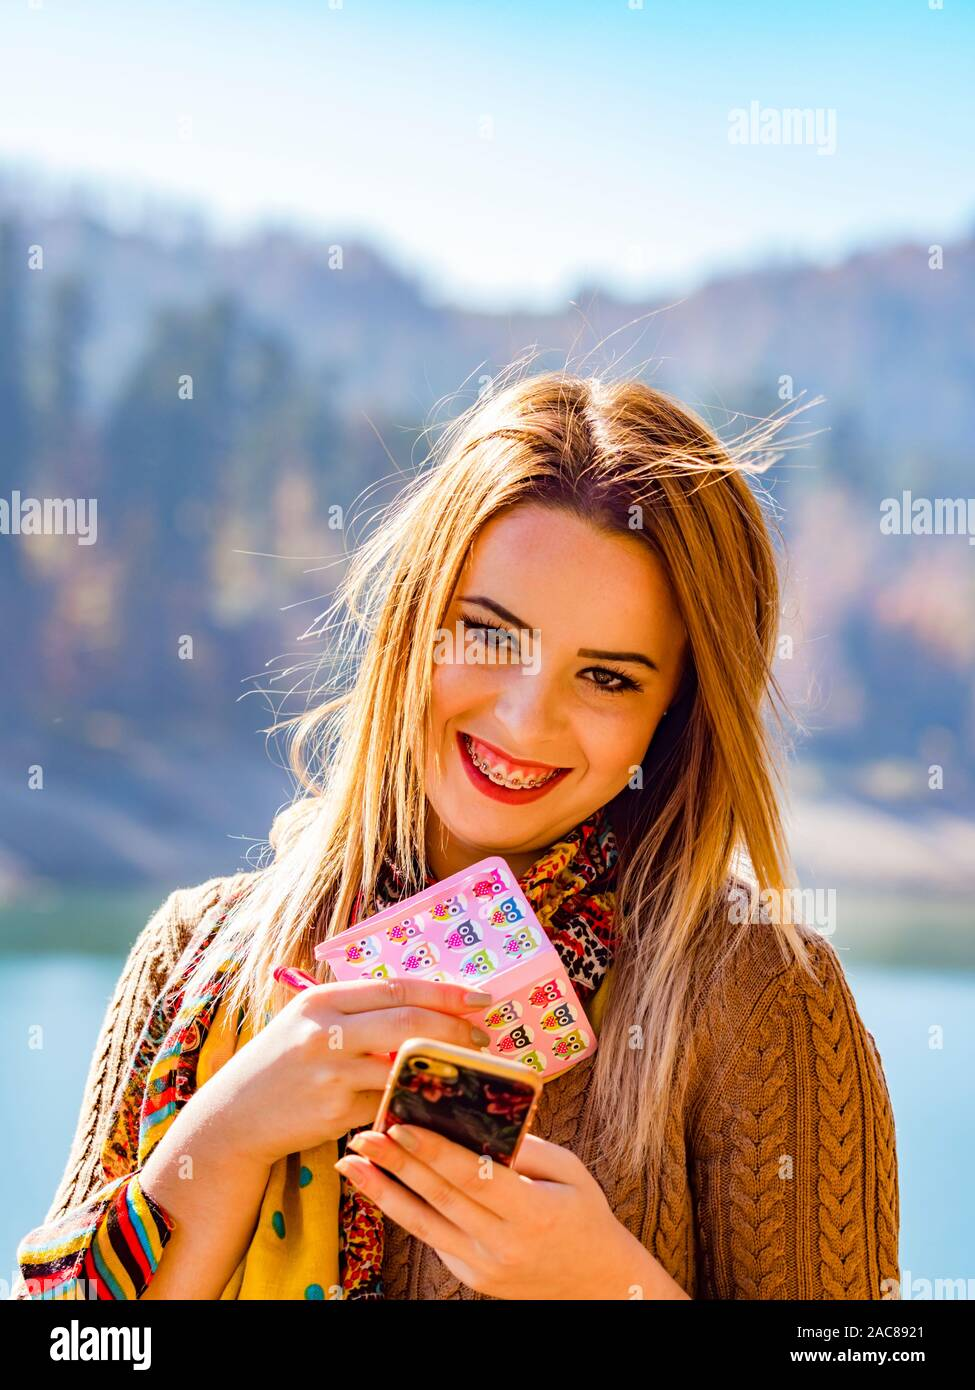 Young woman busy with small note paper notebook and smartphone in hands smiling with teeth braces giggling giggle Stock Photo